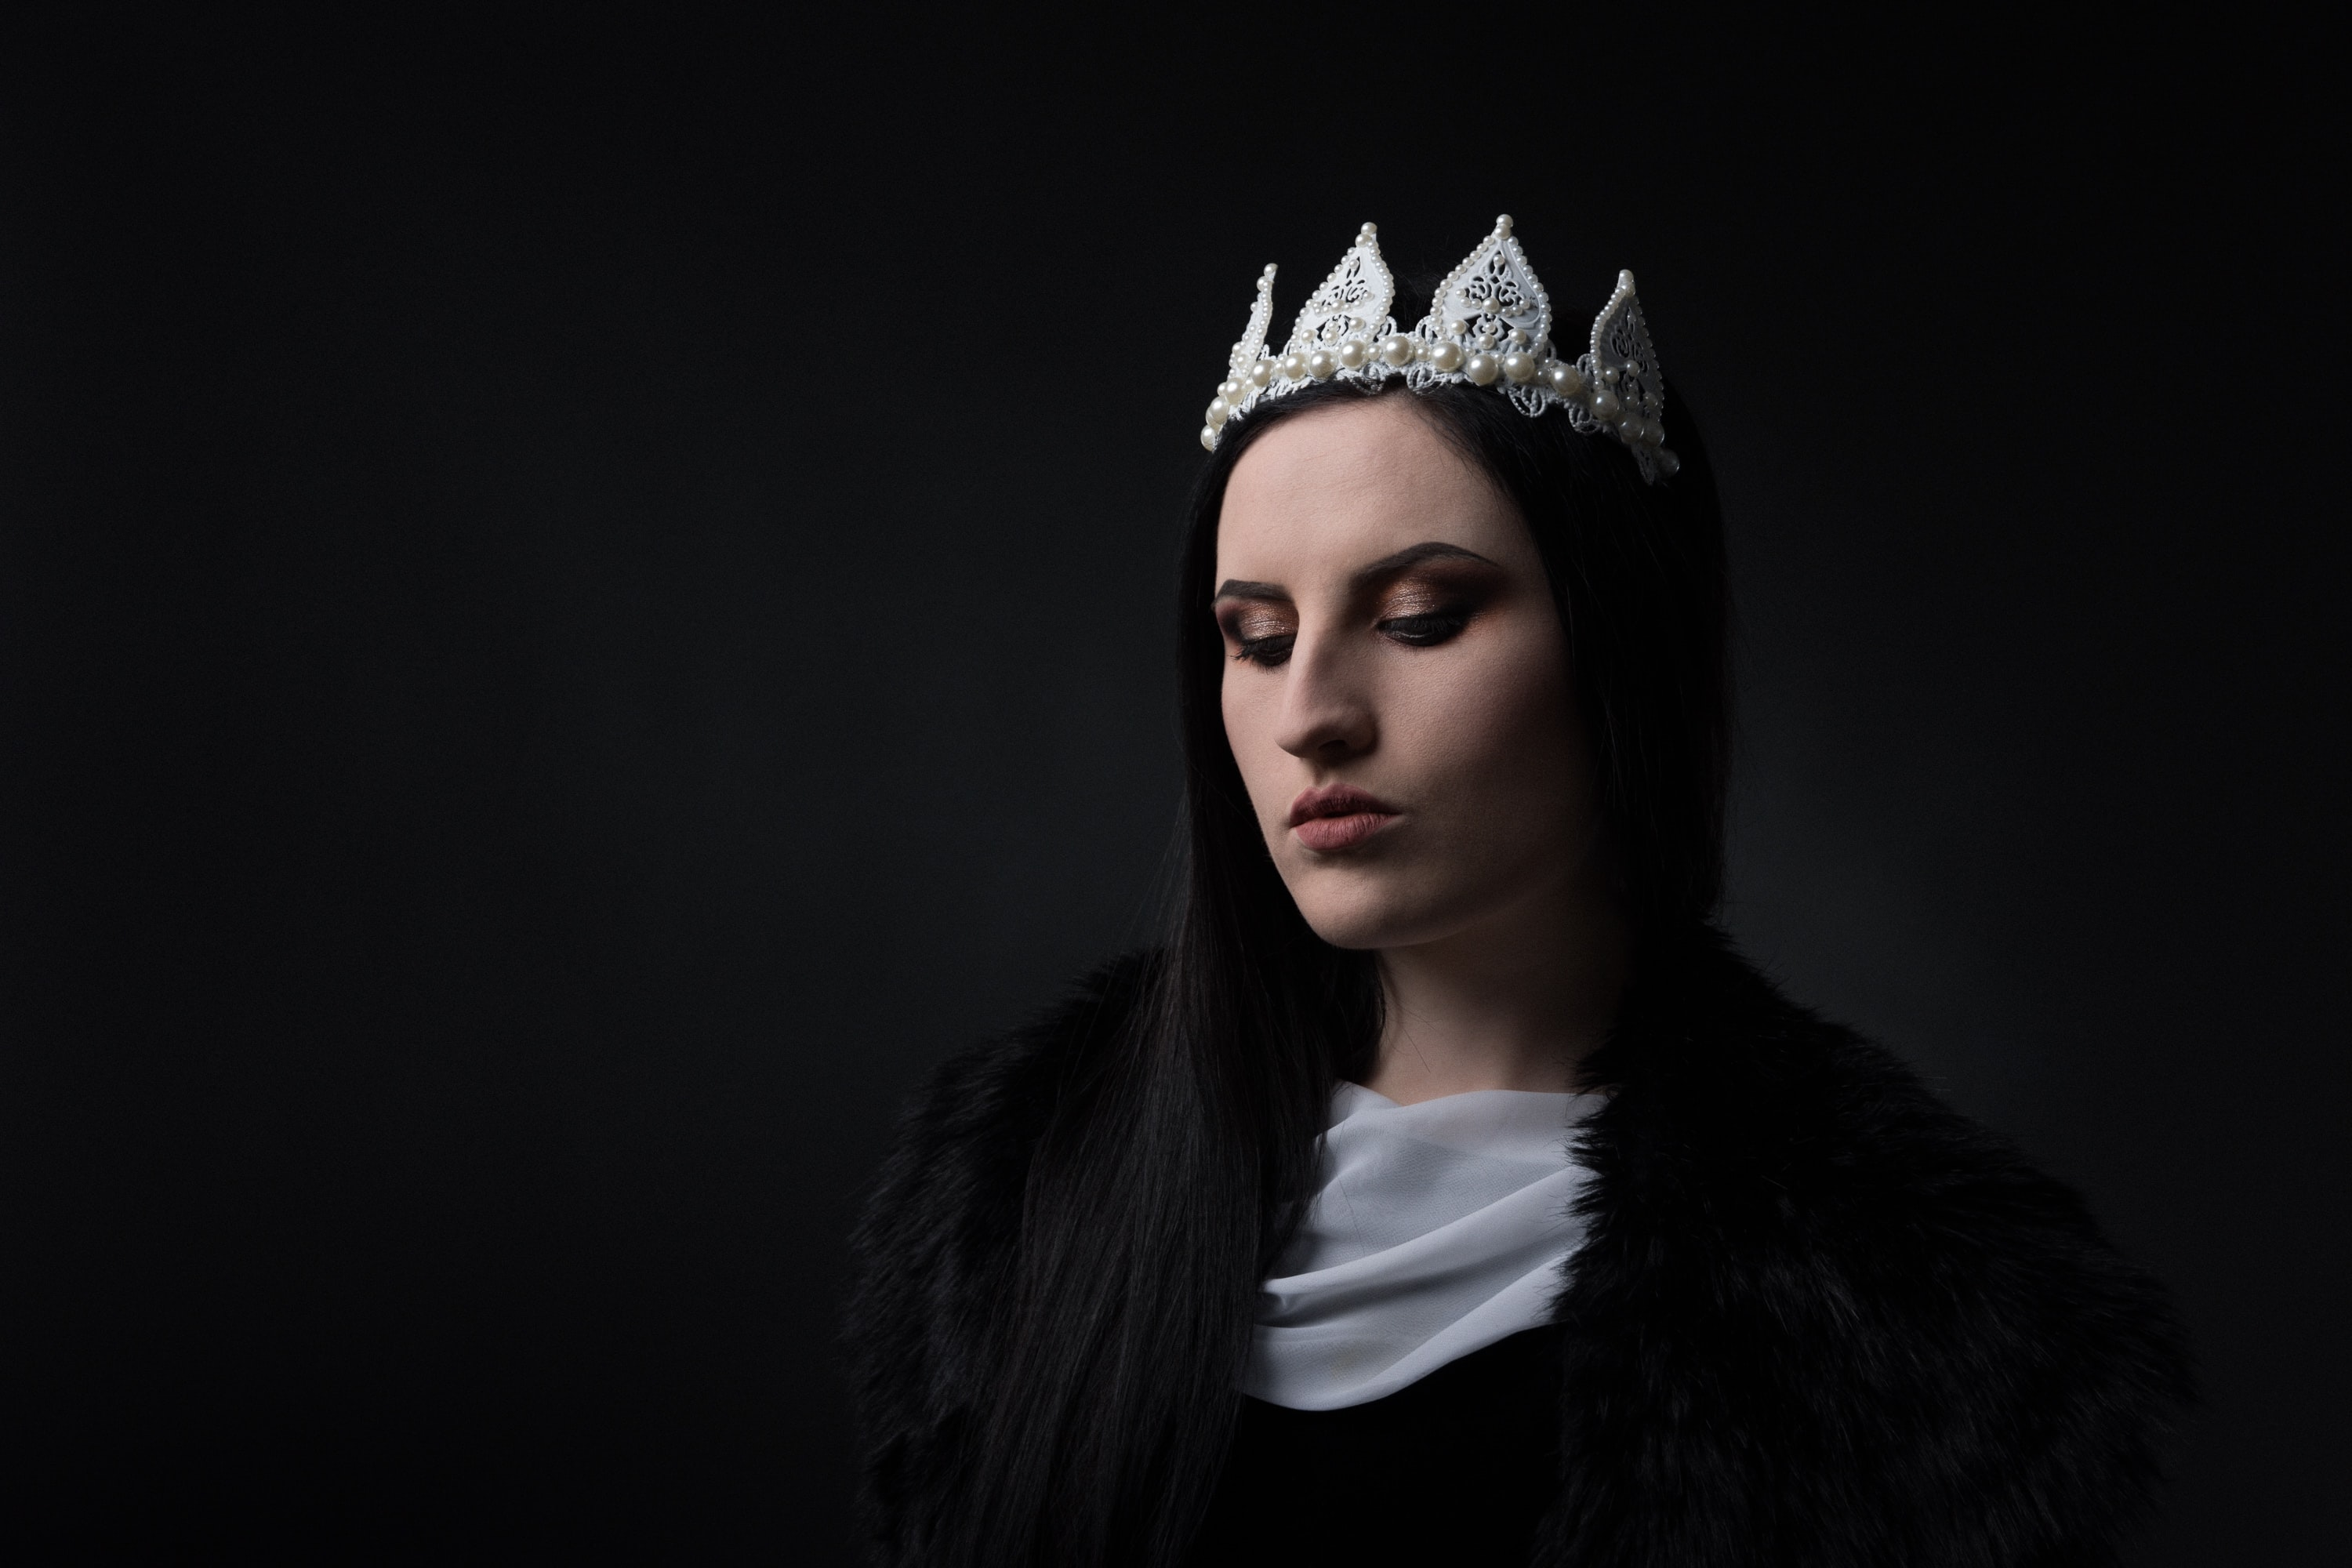 women wearing crown with eyes closed